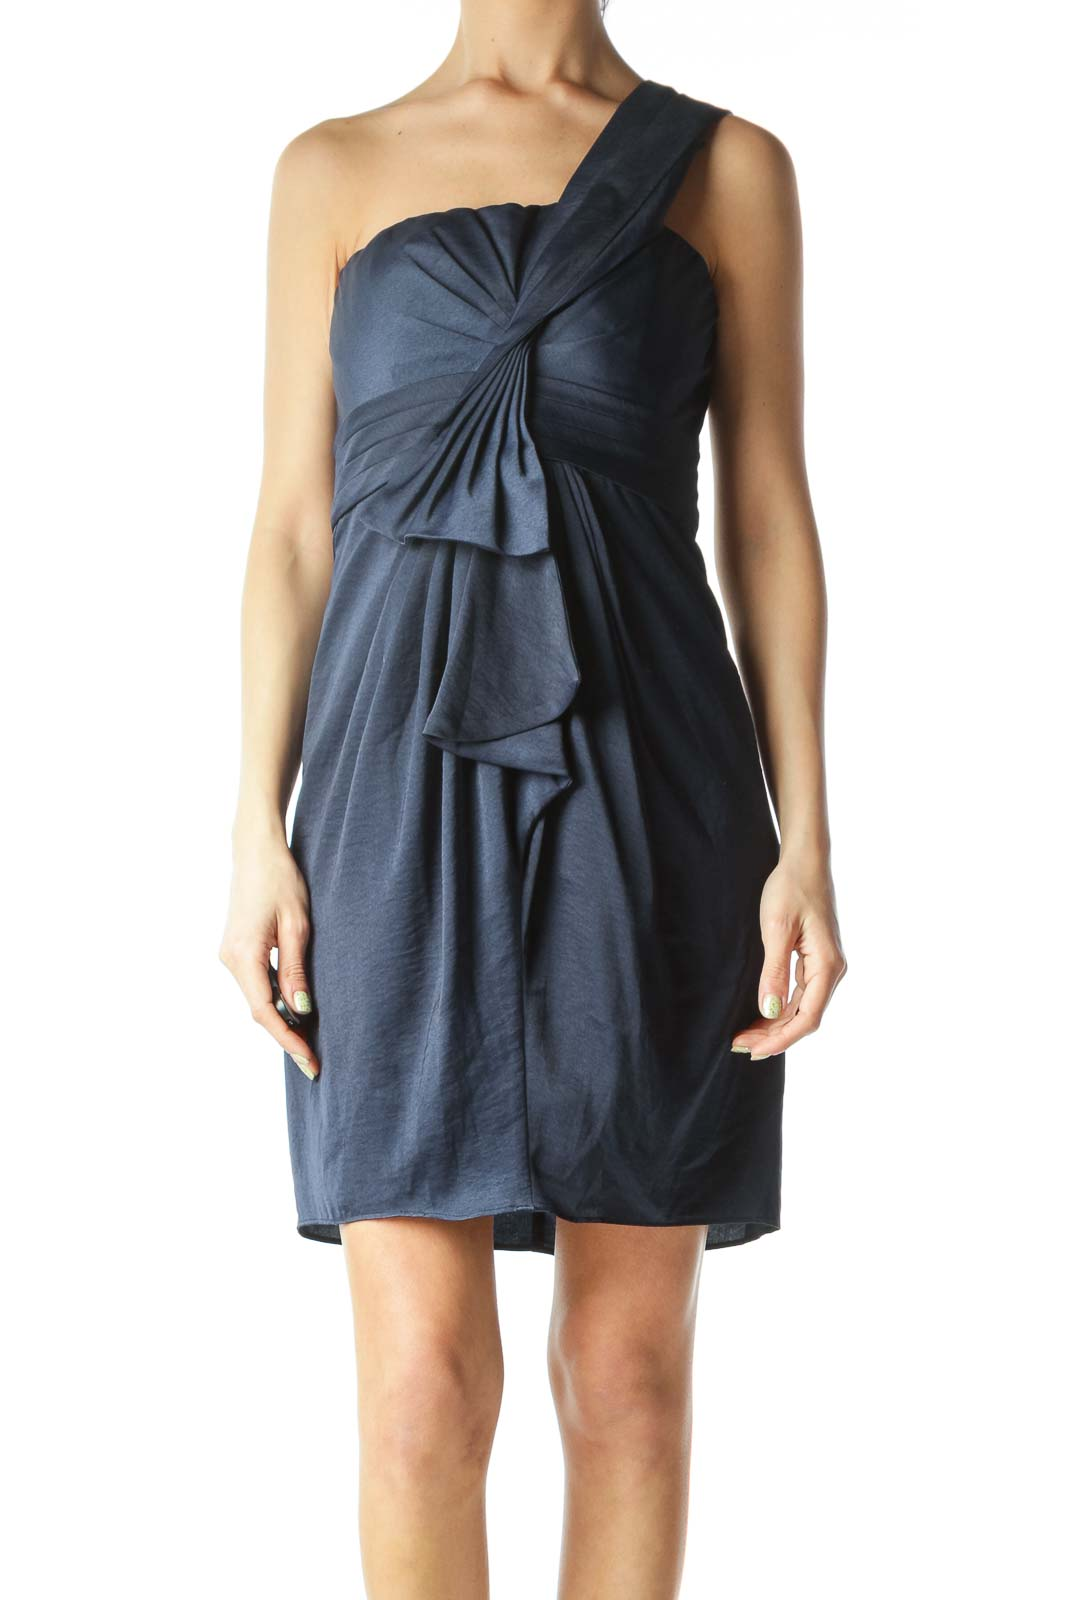 Navy Blue Shoulder-Strap Ruffle-Detail Cocktail Dress